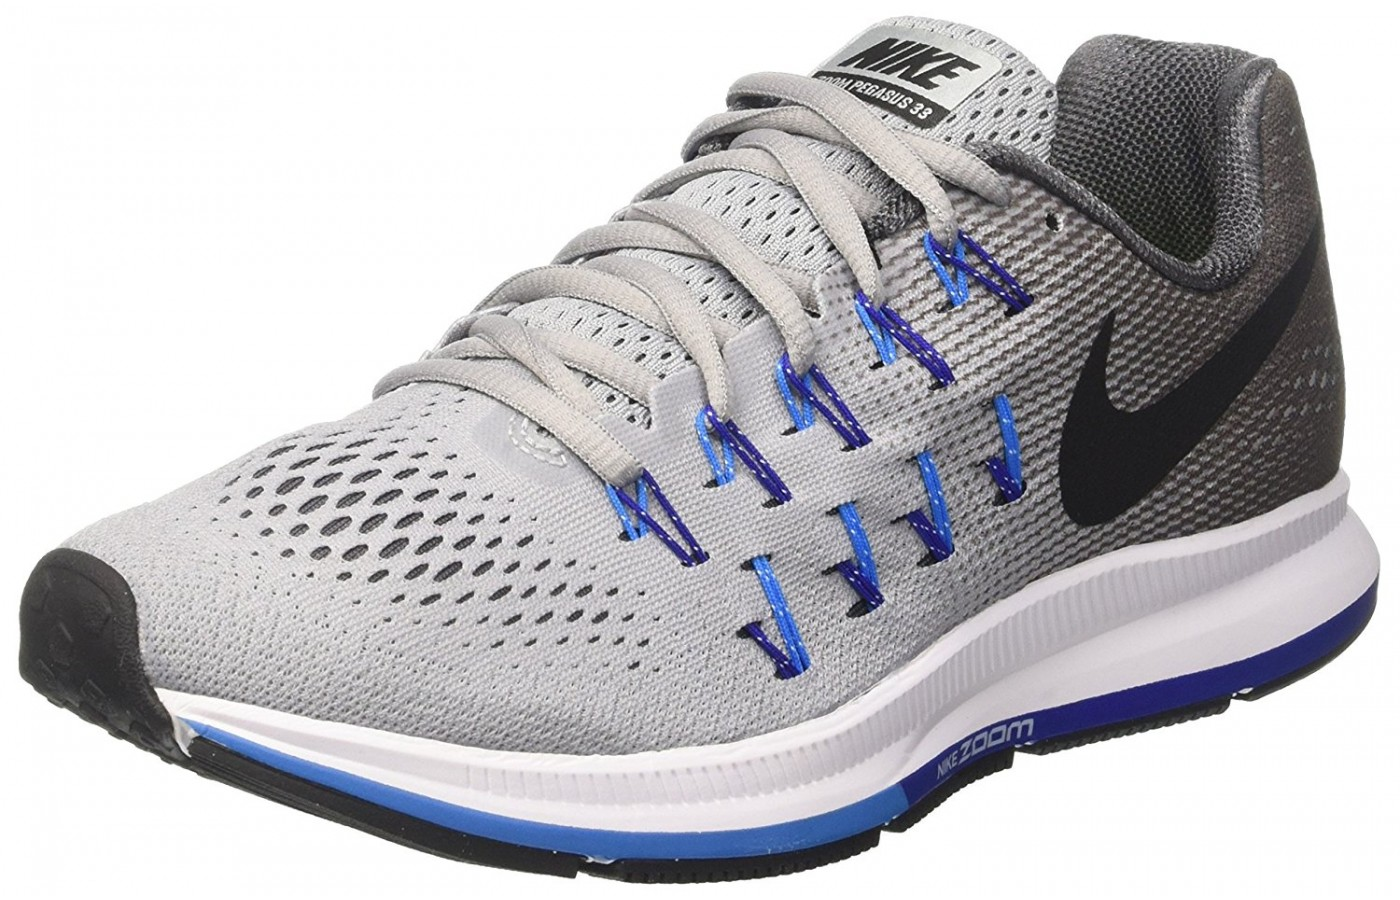 grand choix de 88526 0e124 Nike Air Zoom Pegasus 33